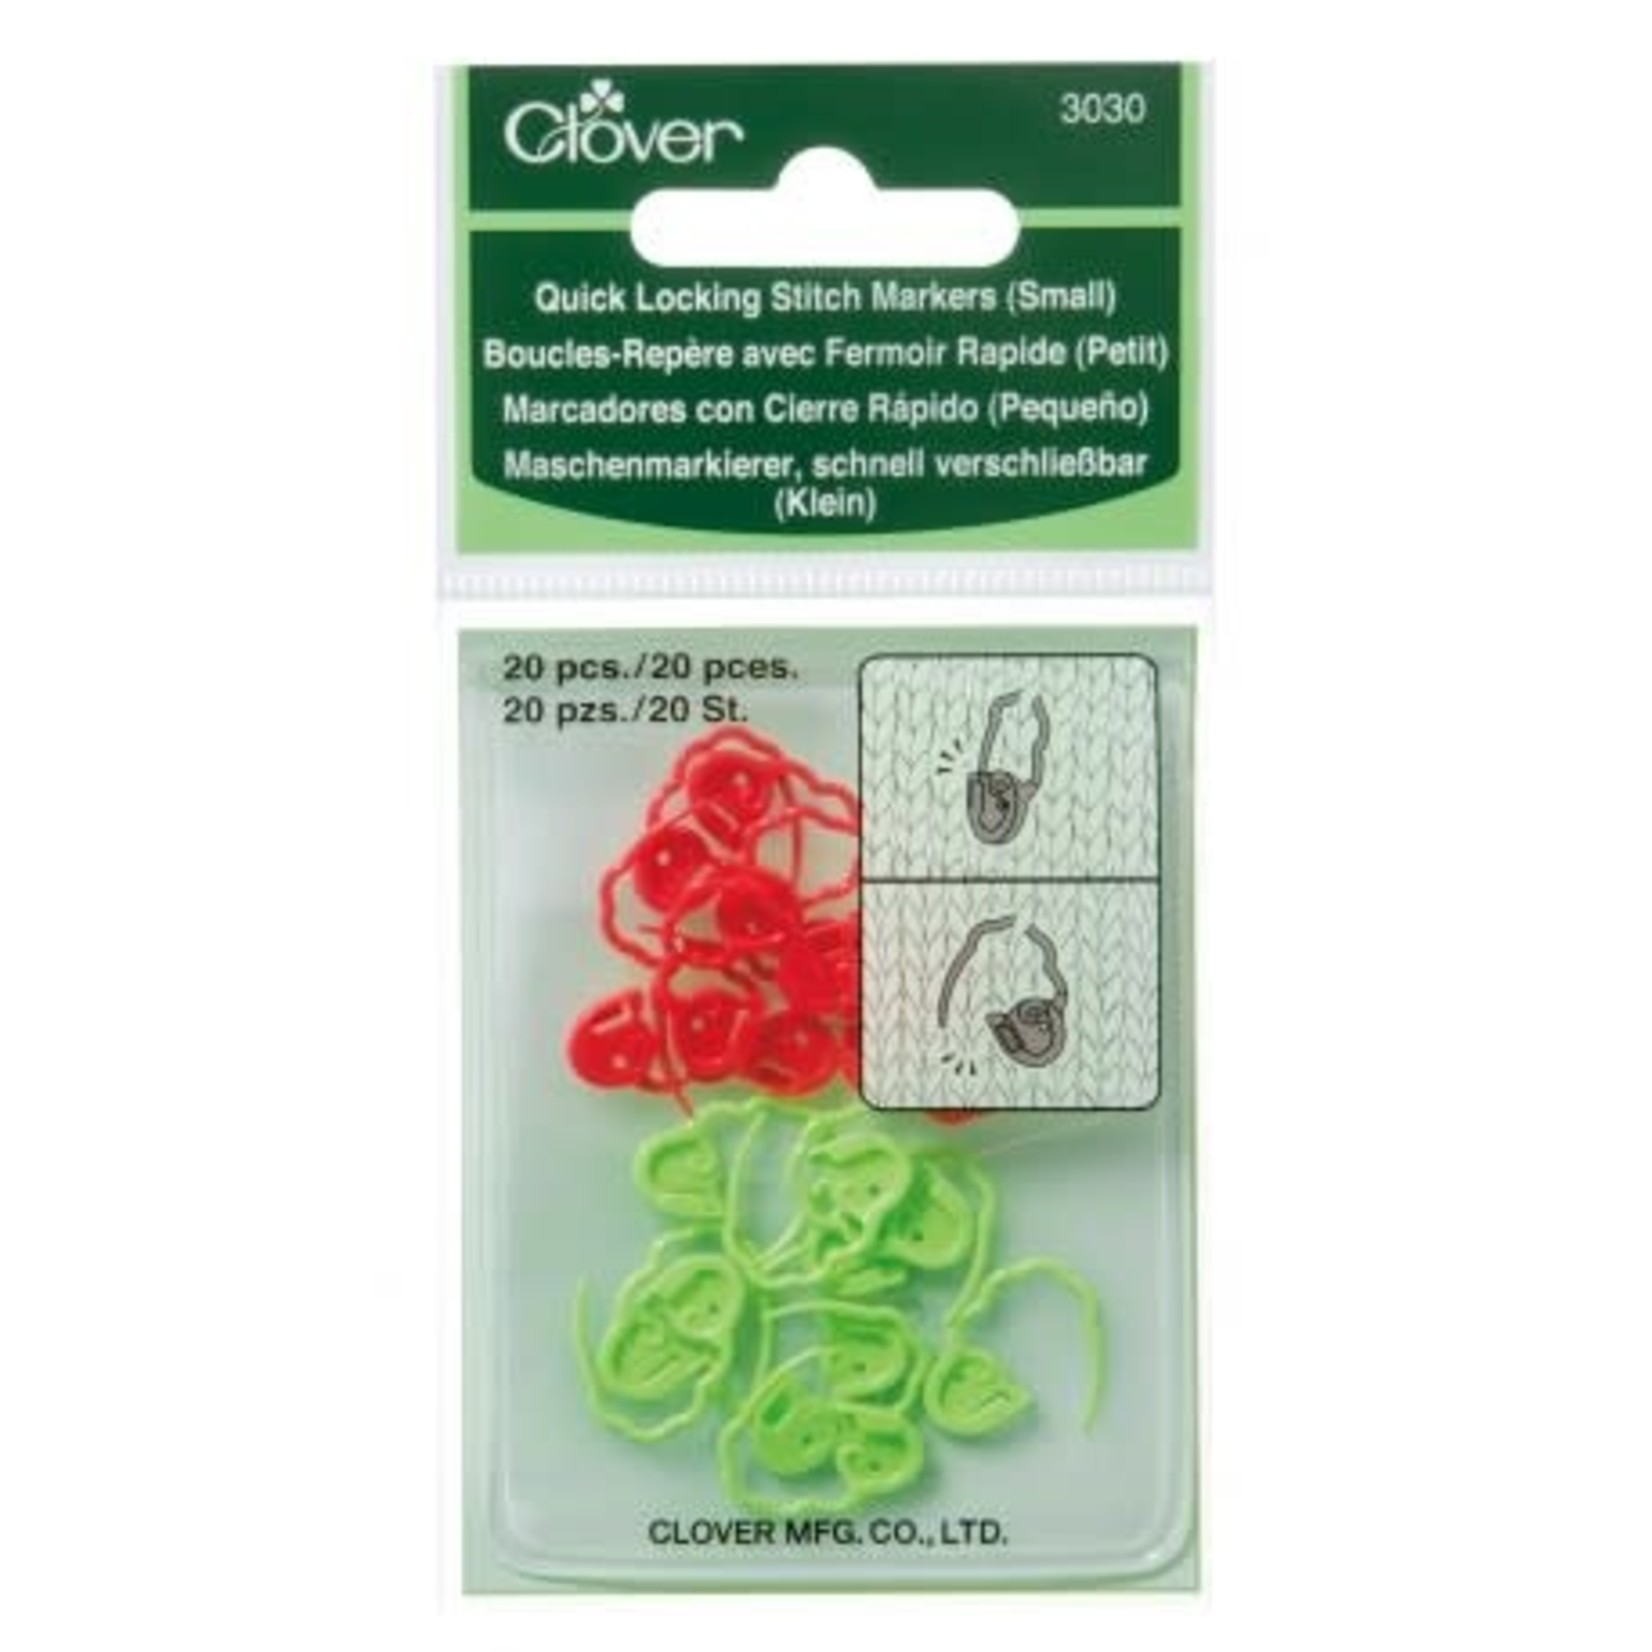 Clover Clover Quick Locking Stitch Markers (Small) - 20 pcs.